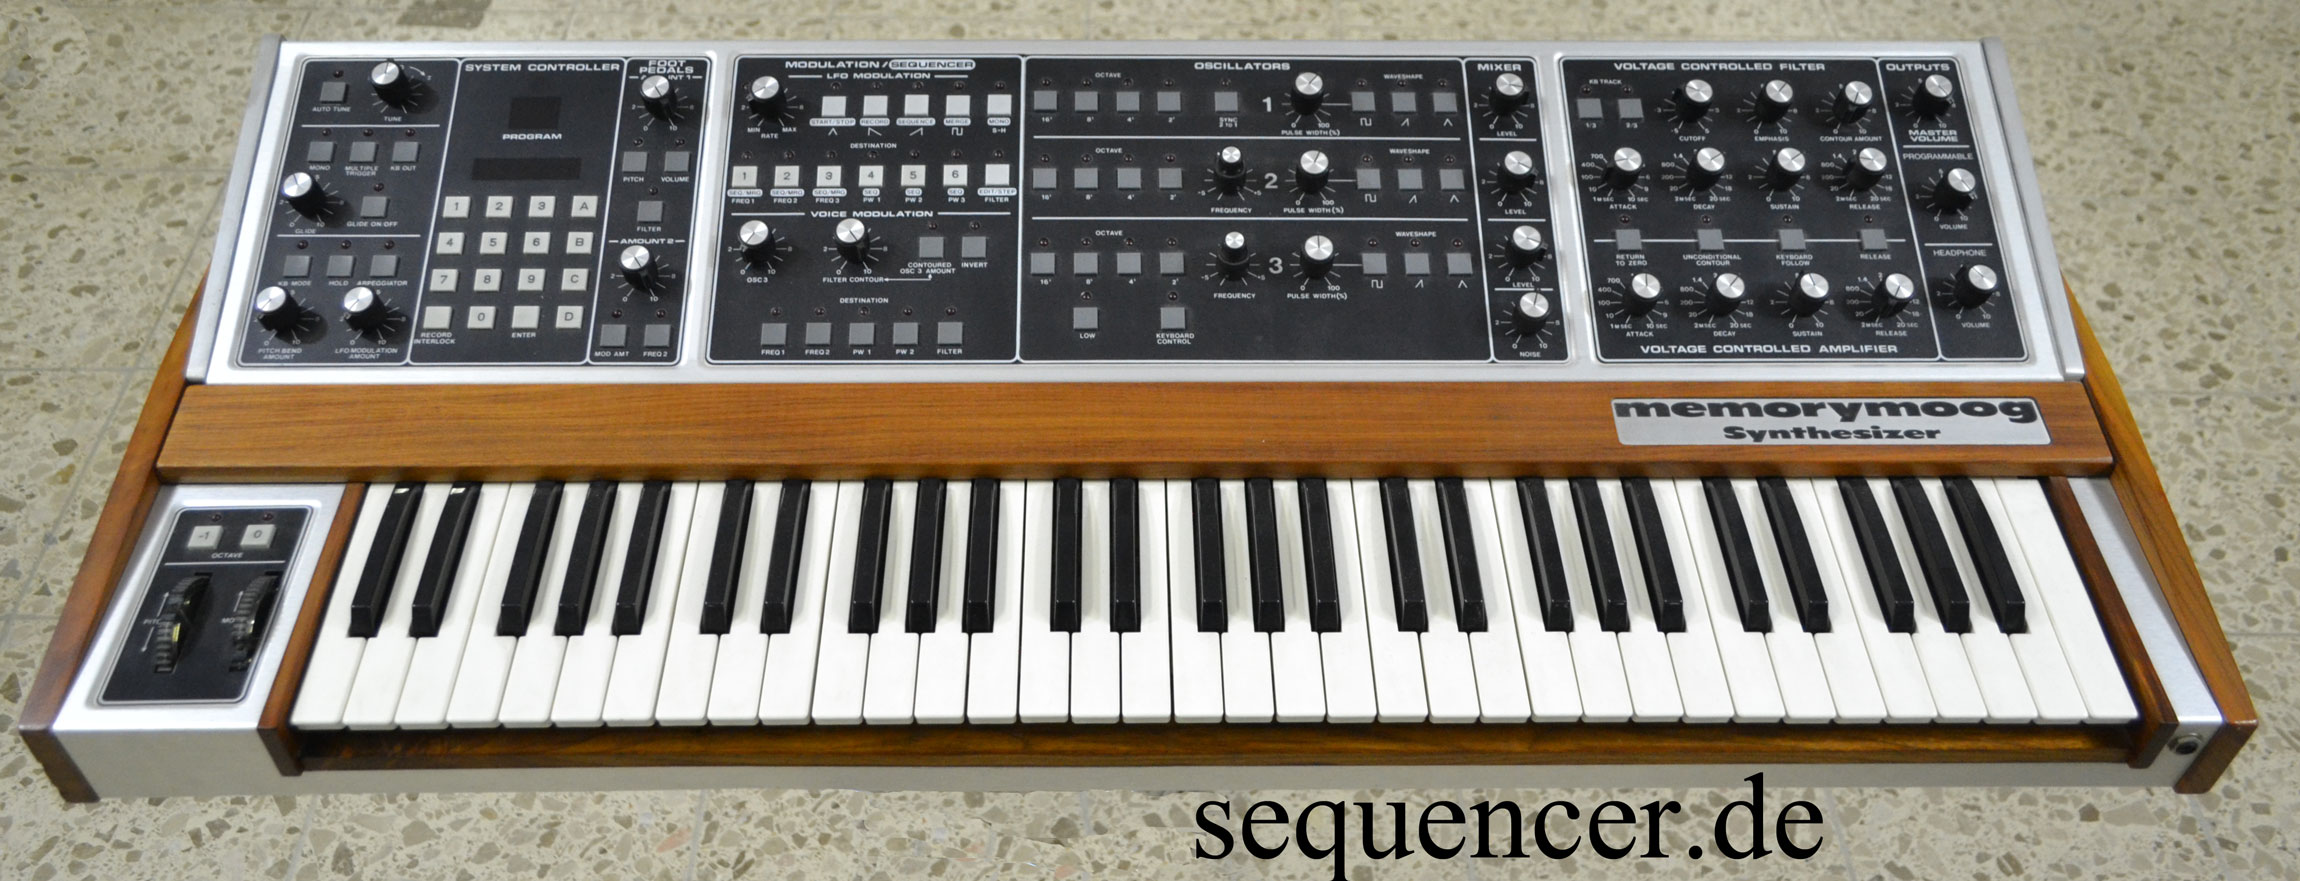 Moog Memorymoog synthesizer